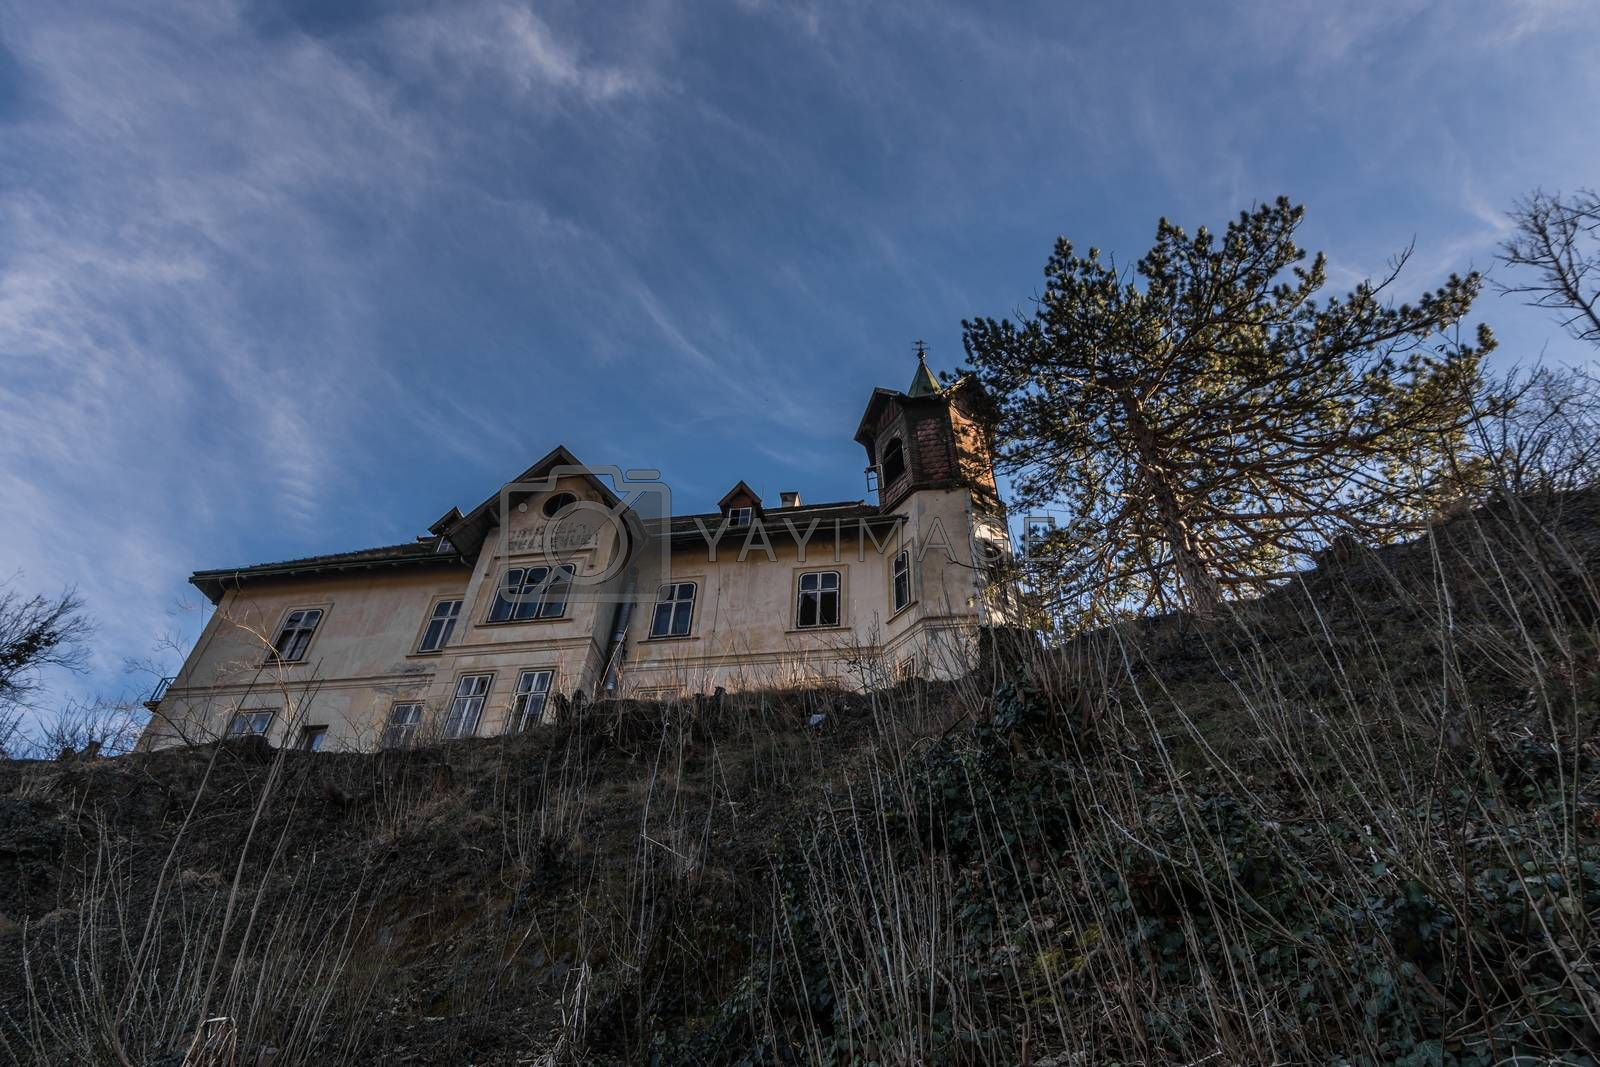 Abandoned old hotel on top of a mountain with blue sky